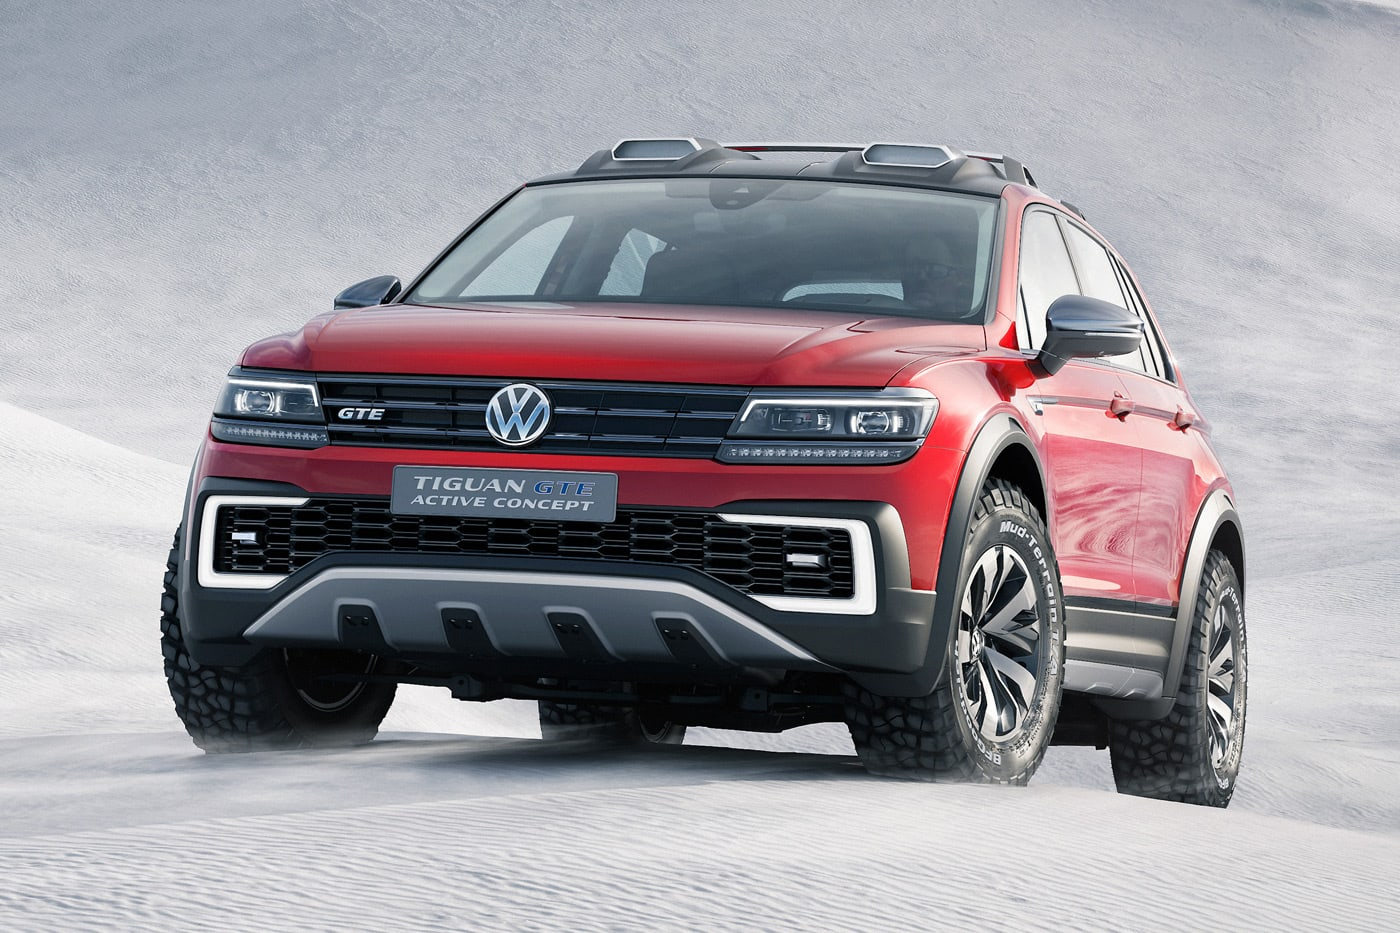 Most Plug In Hybrid Vehicles Are Better Suited To The Streets Than Mud And Rocks But Volkswagen Thinks It Can Make An Exception Its Just Unveiled Tiguan